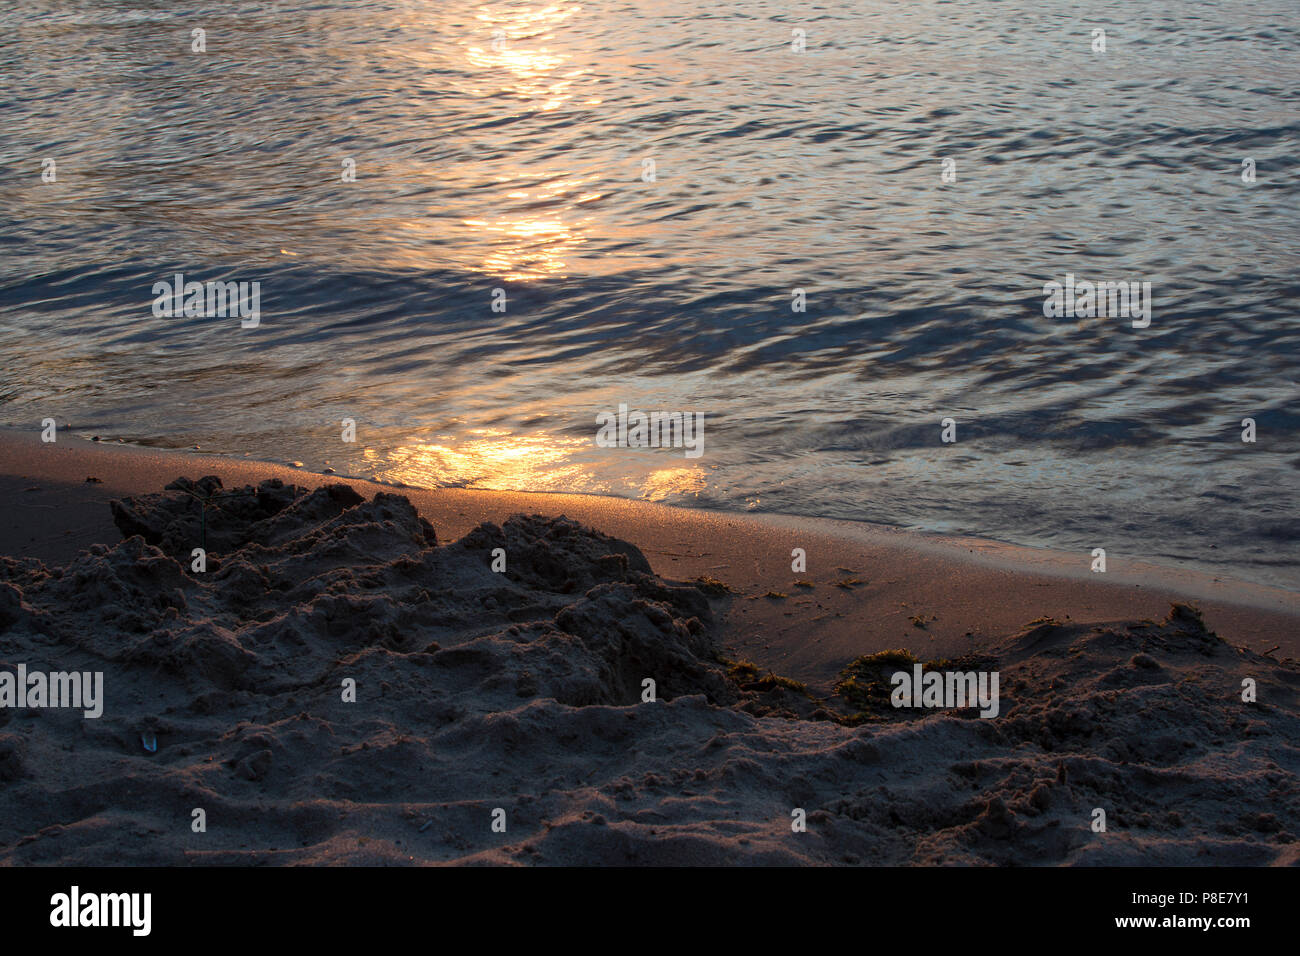 Closeup of glimmering sand on beach with reflection of the sun in the water. - Stock Image